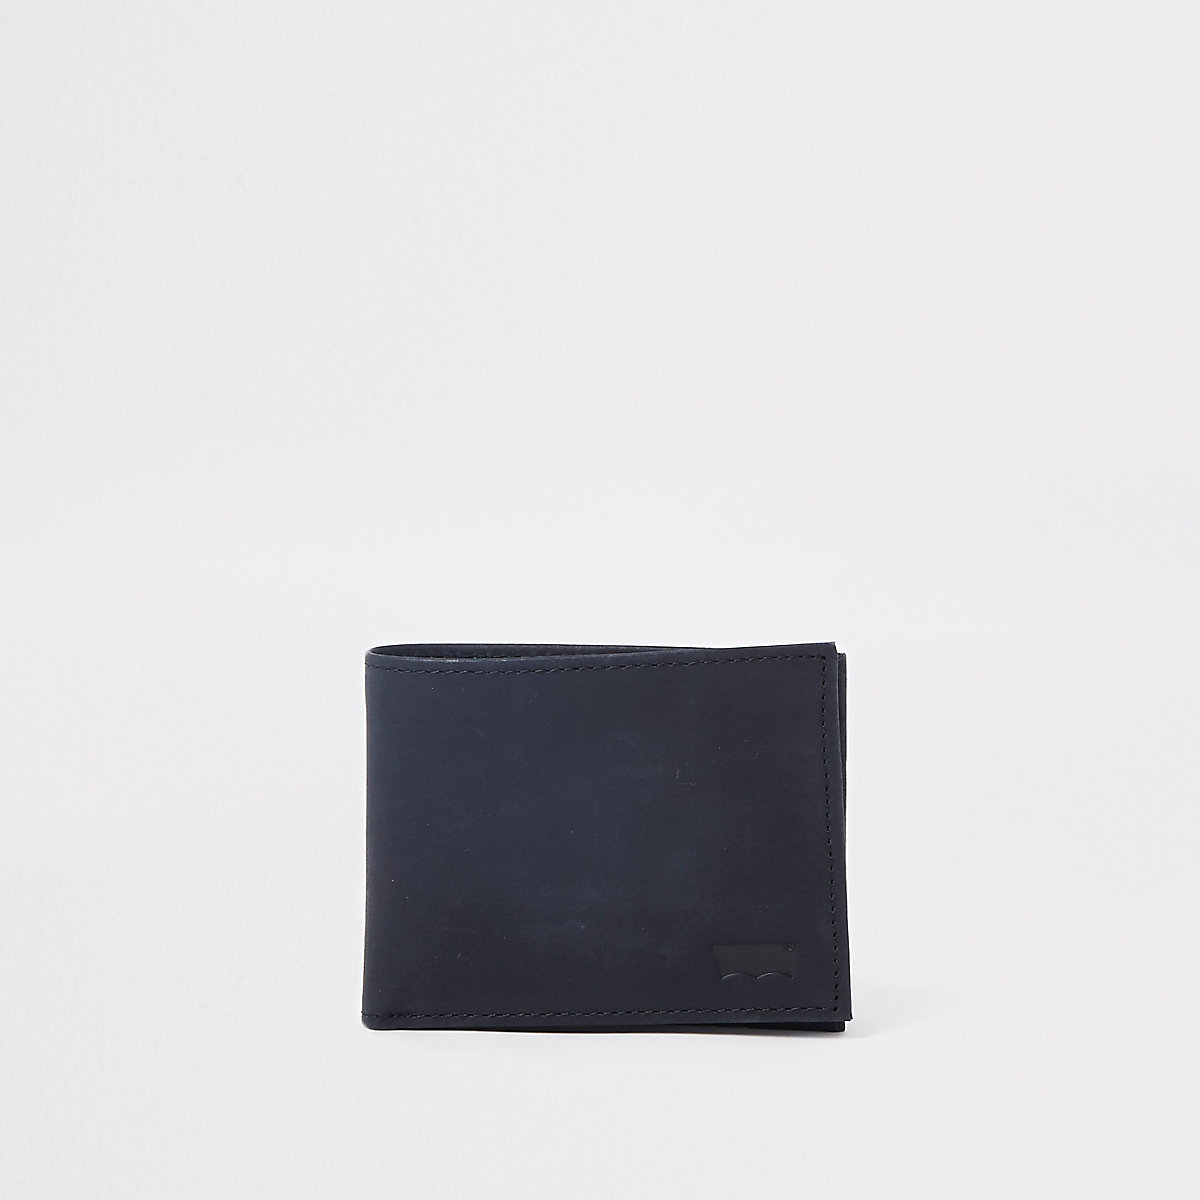 Levi's black leather fold out wallet